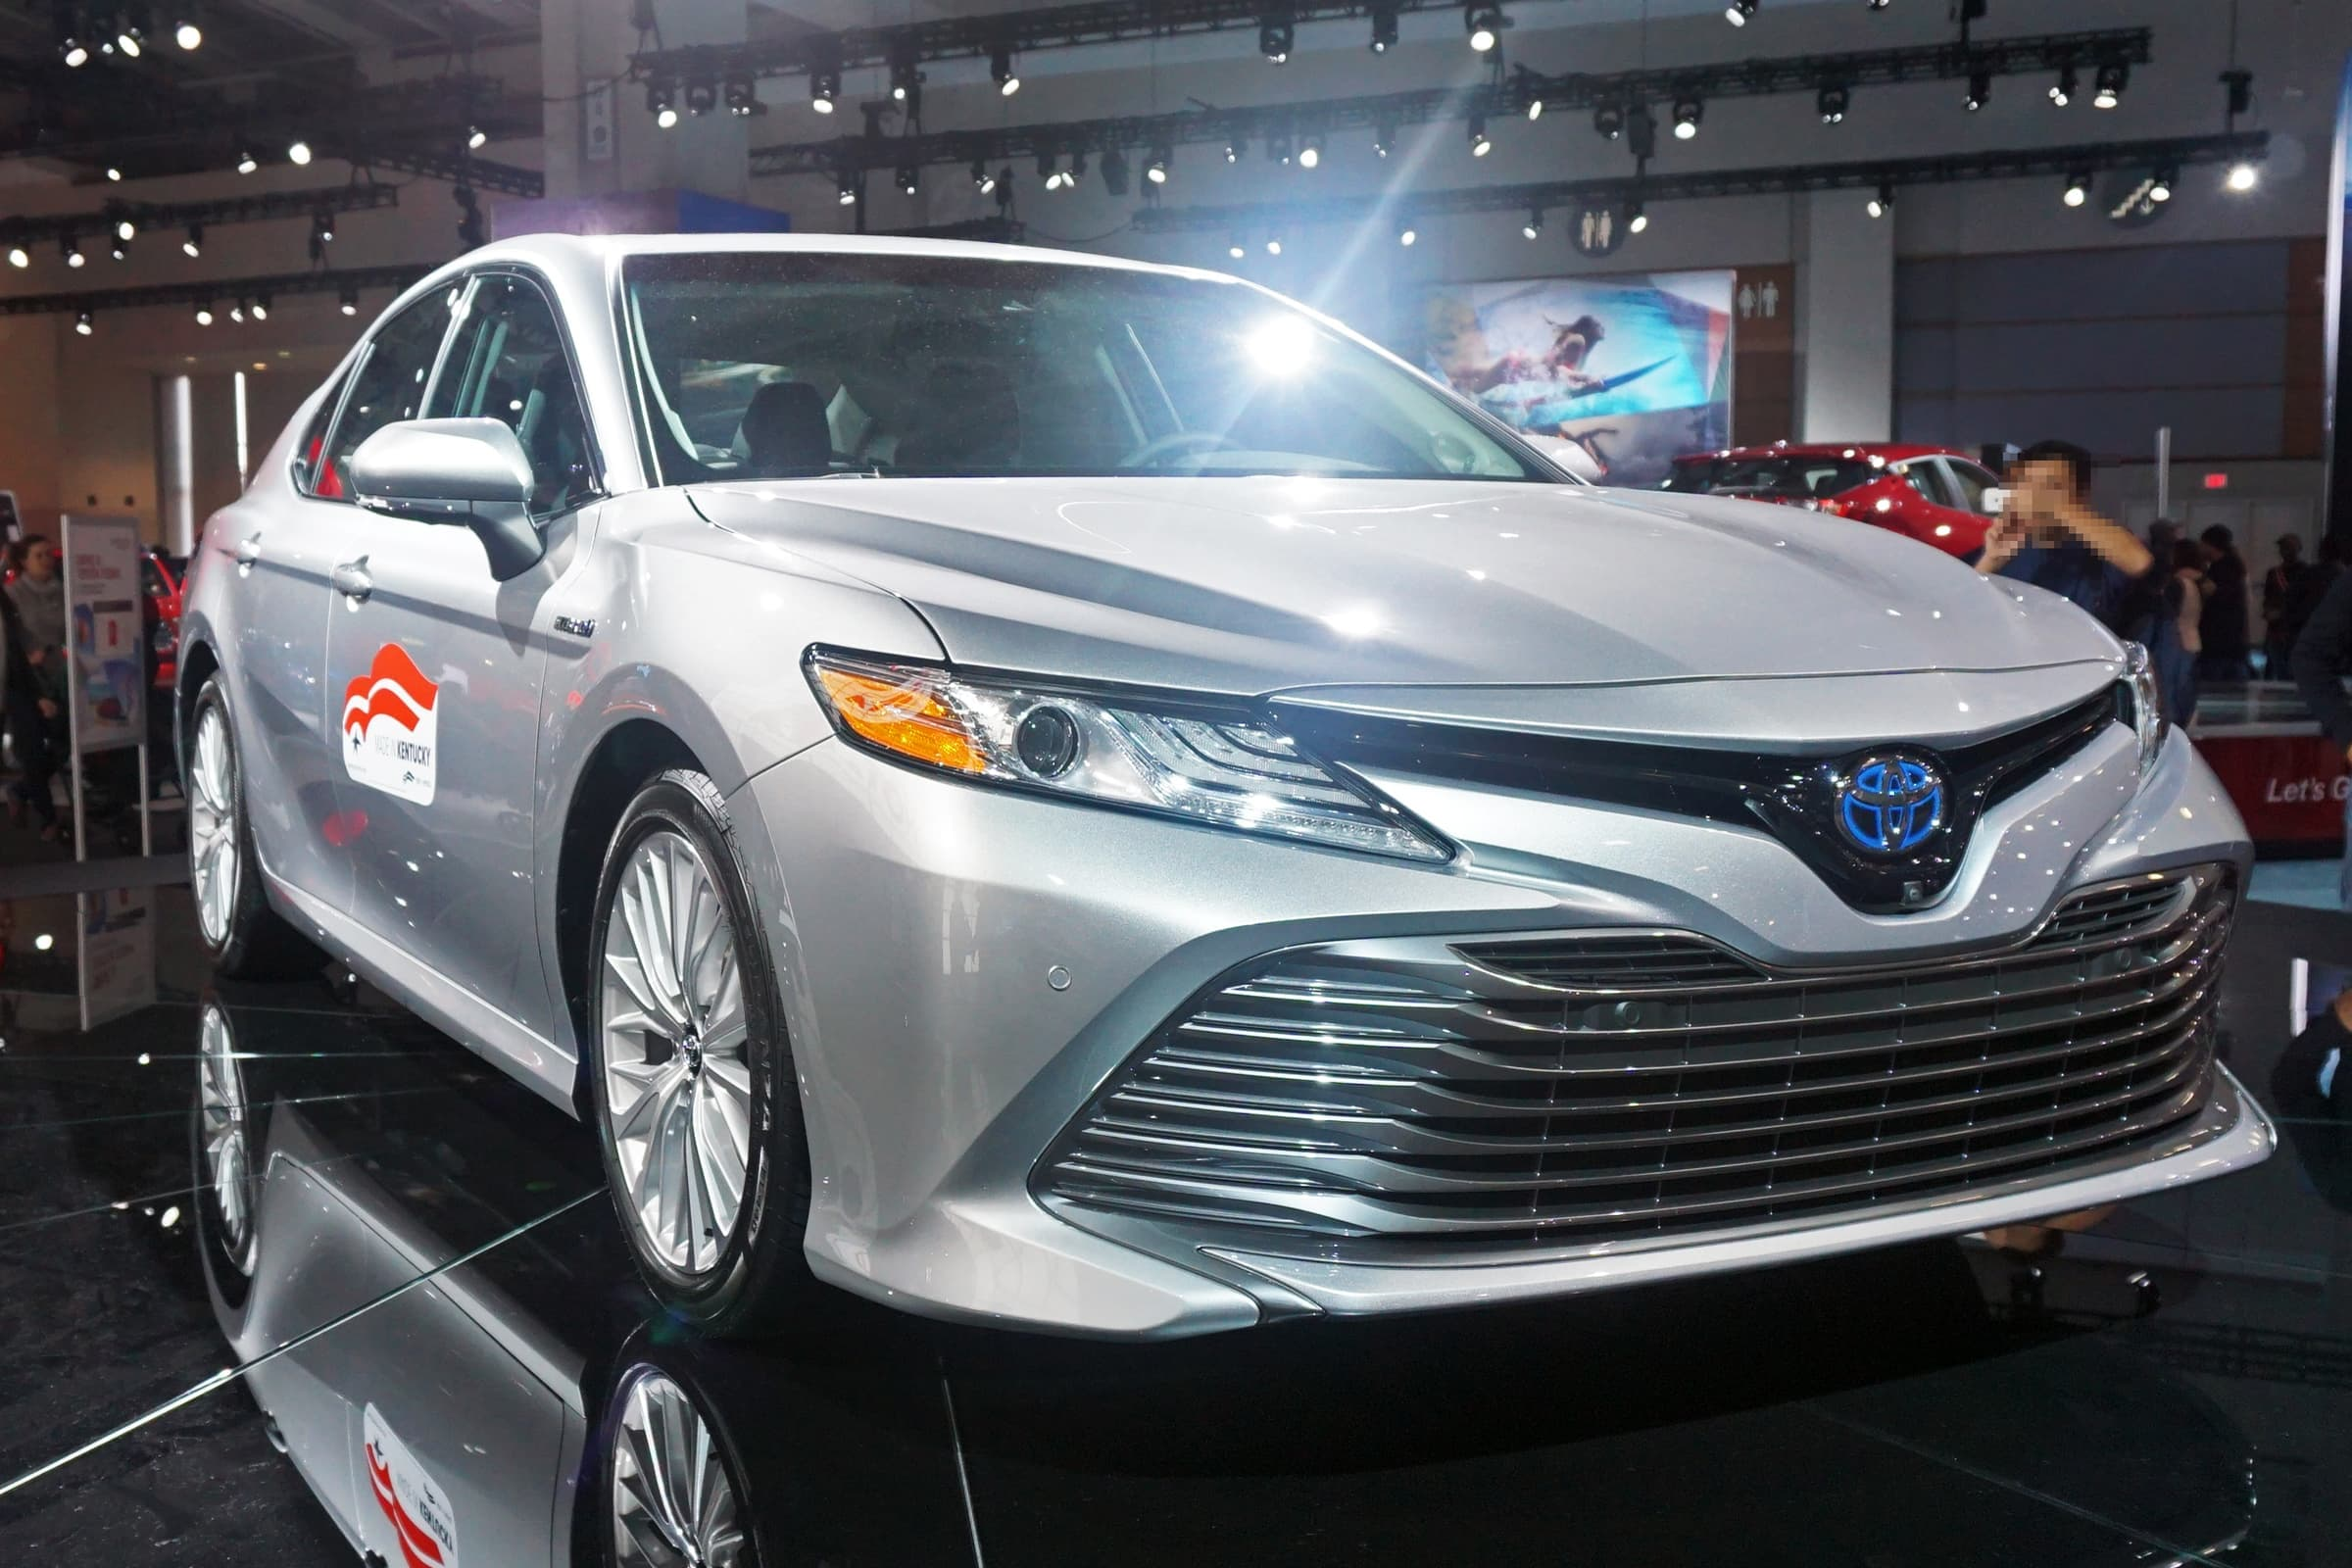 Toyota Camry Hd Wallpapers 8 Toyota Camry 2018 Wallpapers Hd